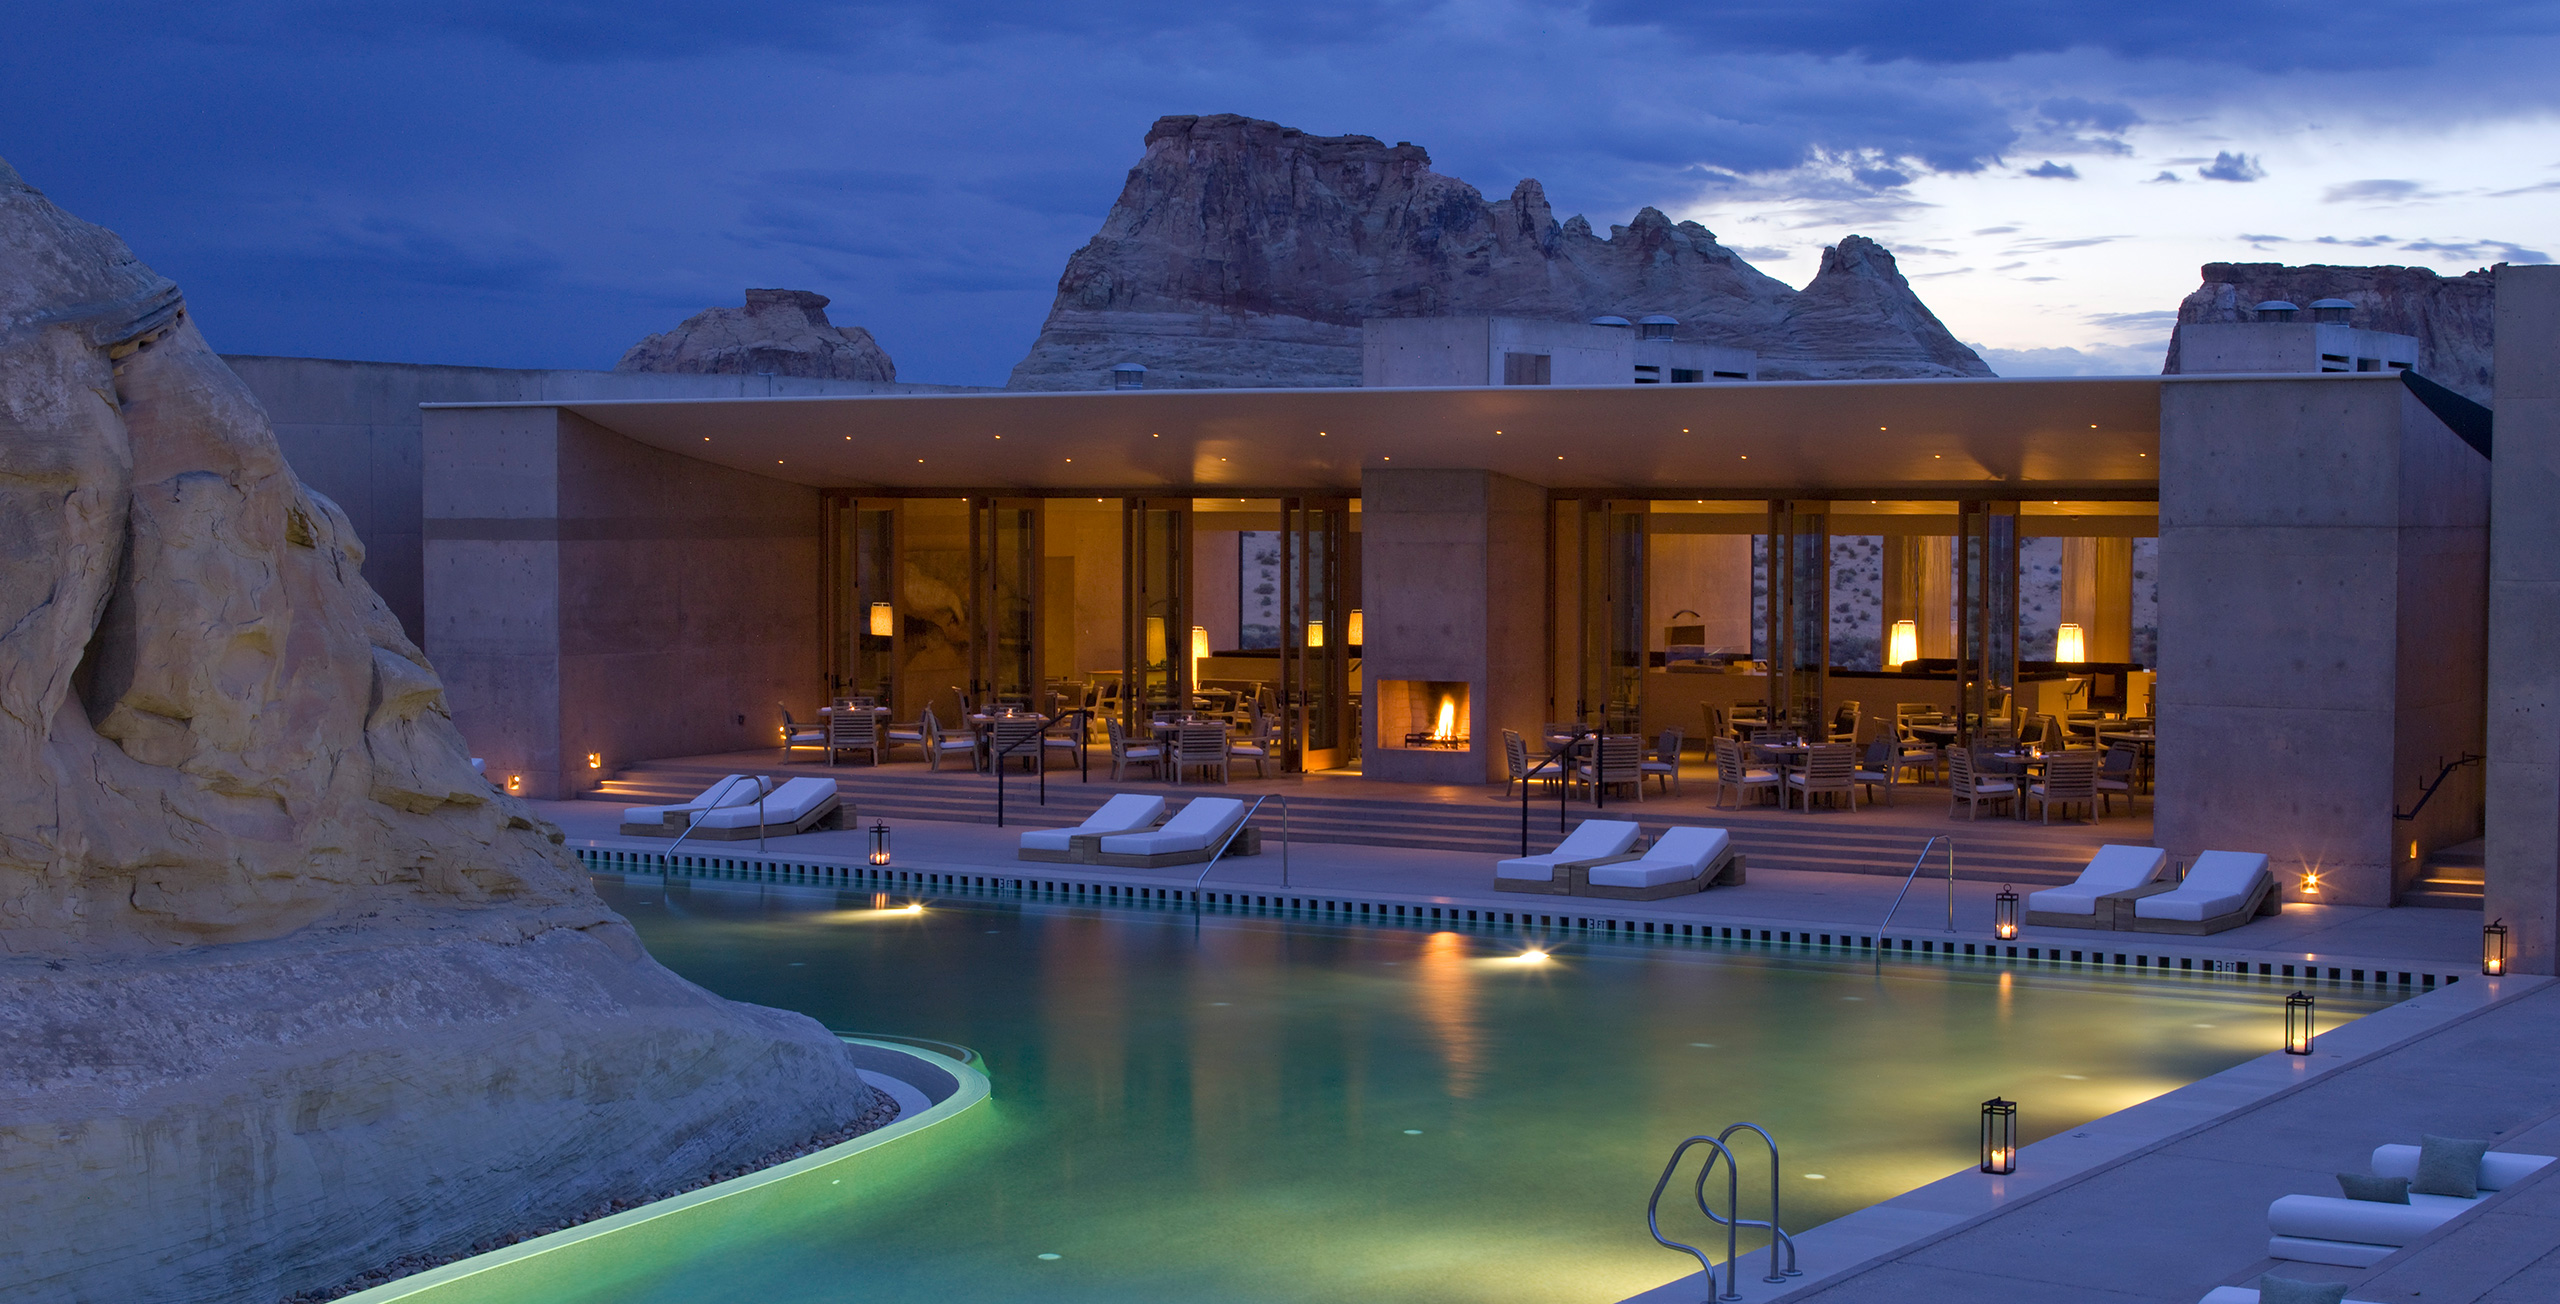 Top Luxury Hotels in America - Amangiri - Canyon Point, UT - top remote resorts in usa Top Luxury Hotels in America Top Luxury Hotels in America for the Perfect End of Summer Getaway Amangiri Canyon Point UT 2